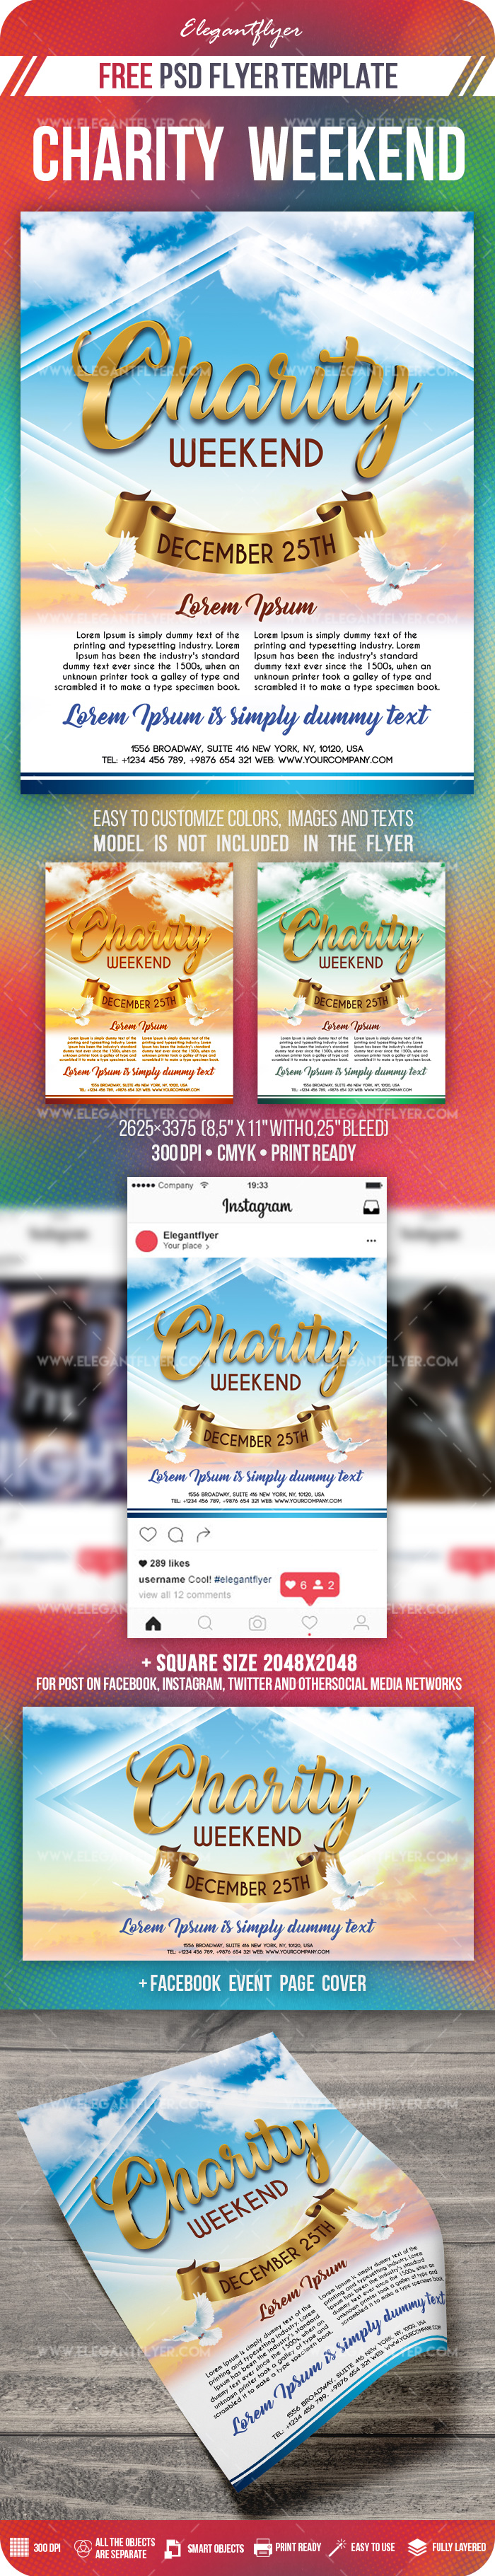 Charity Weekend – Free Flyer PSD Template